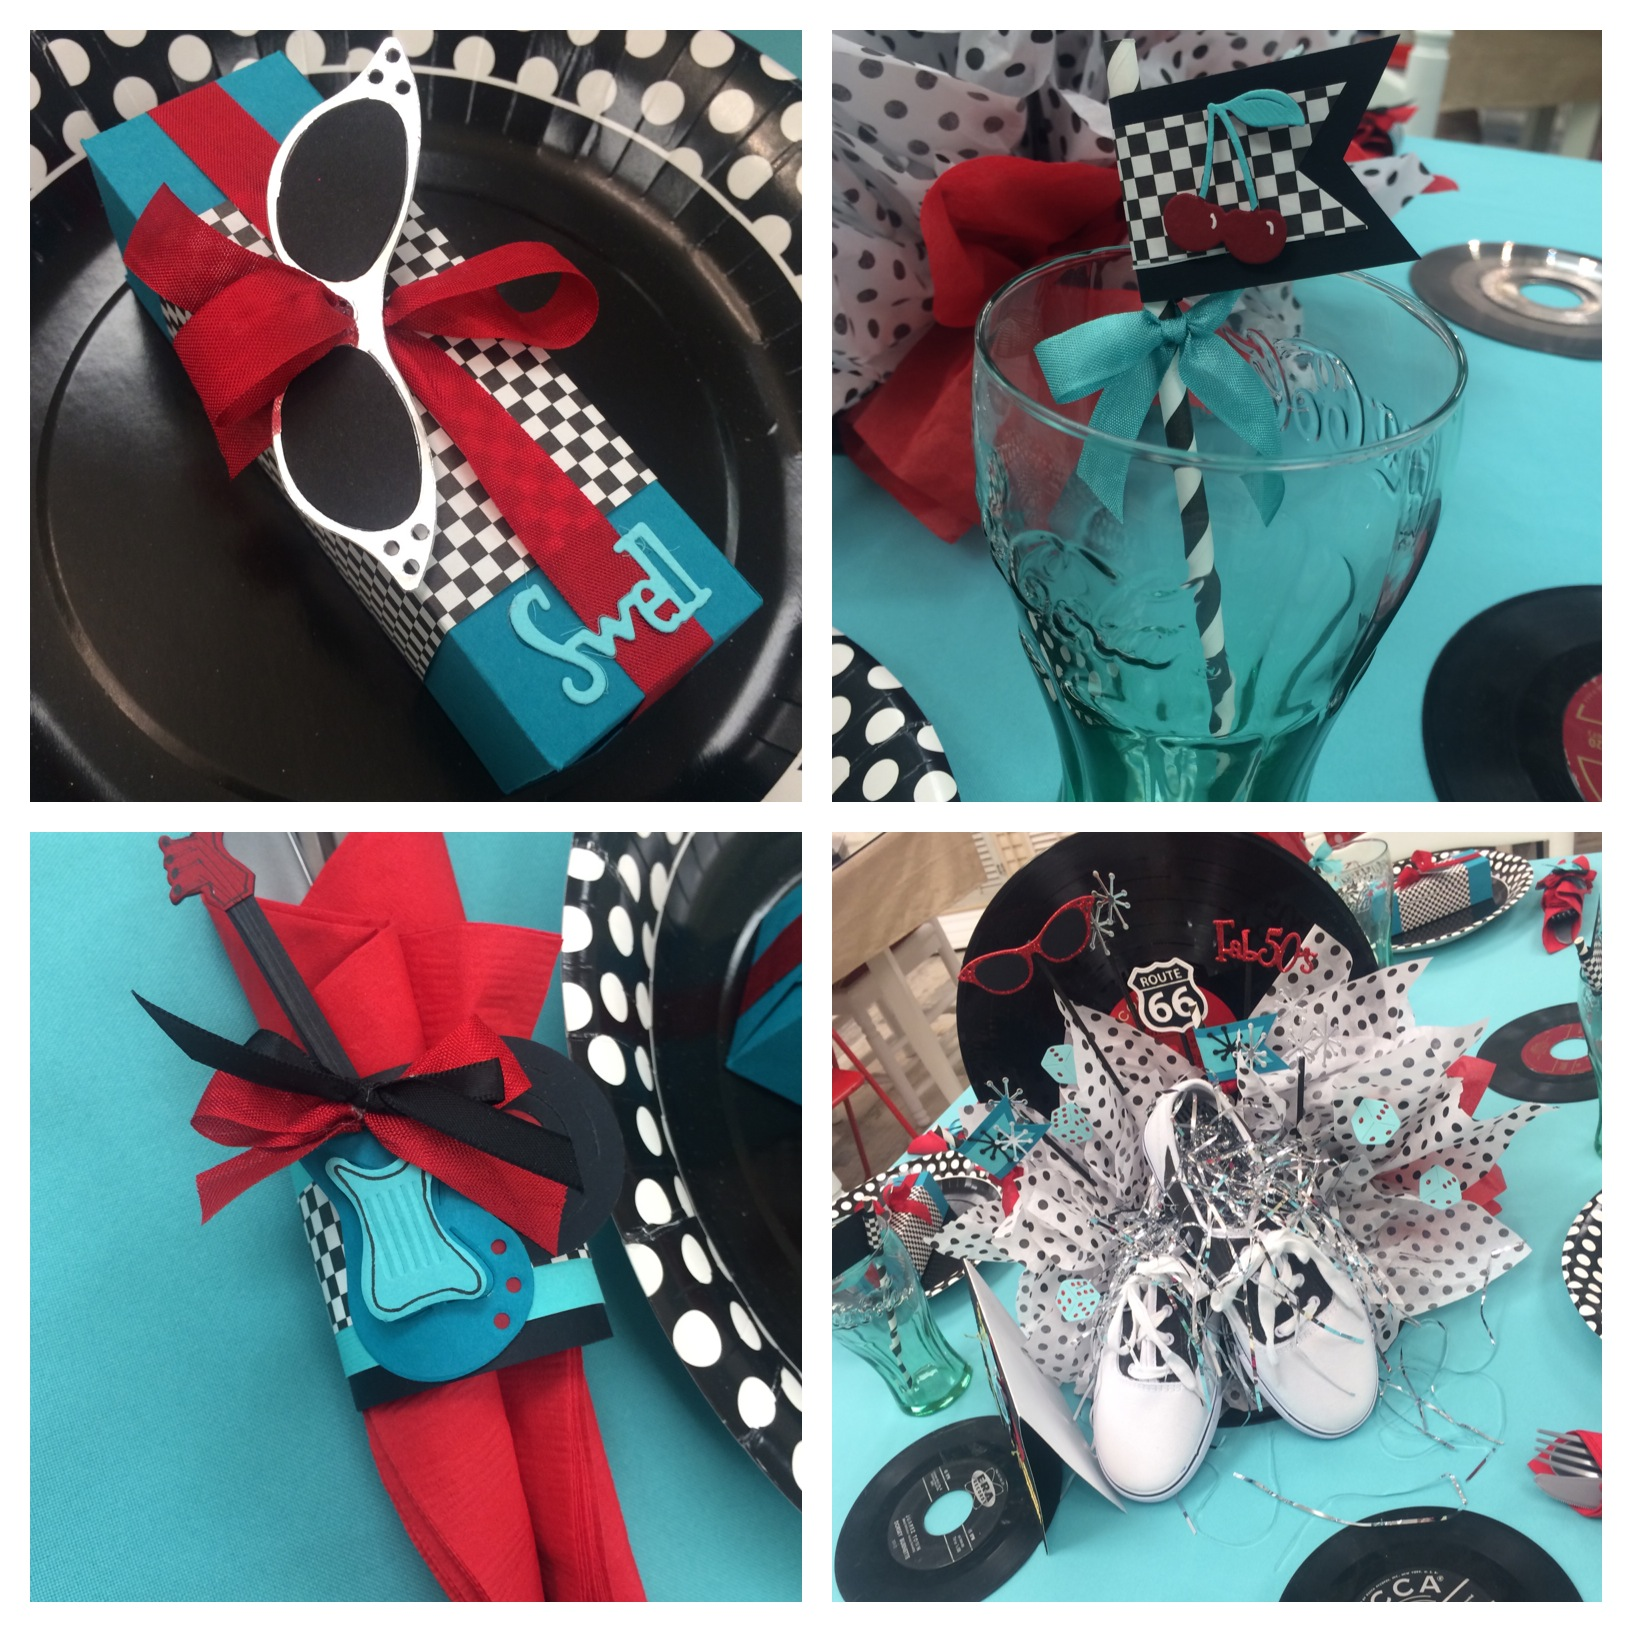 Summer fun at the sizzix 1950s sock hop sizzix1950s for 1950s party decoration